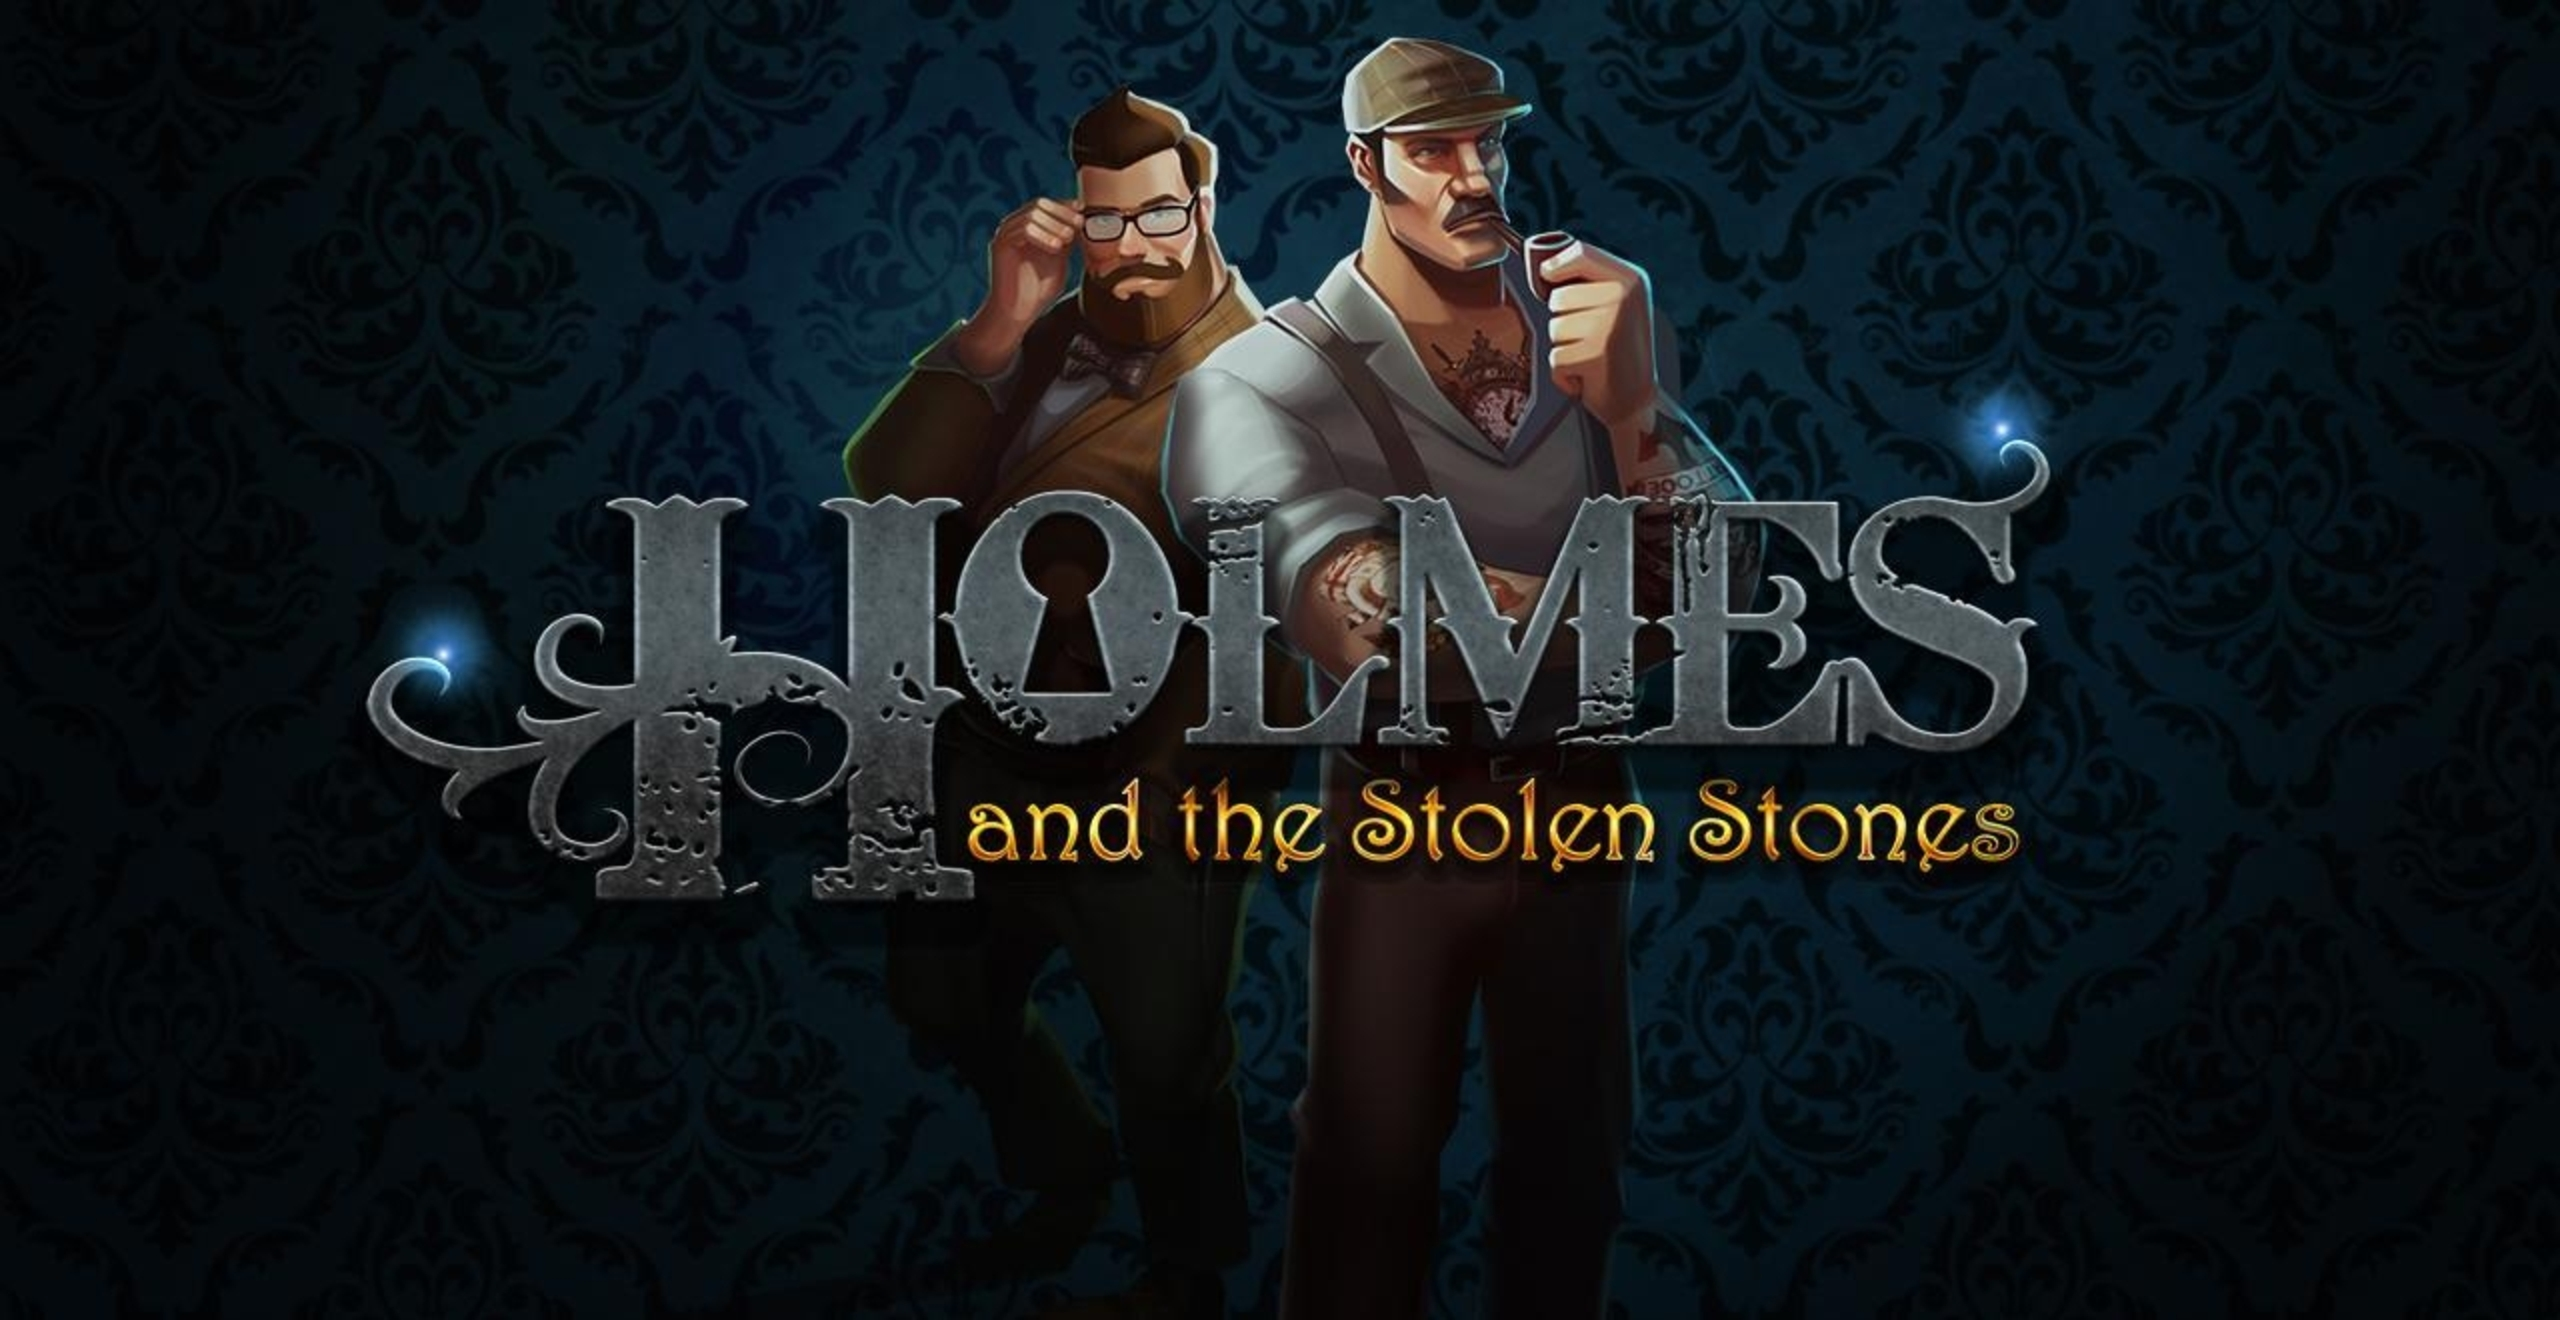 The Holmes and the Stolen Stones Online Slot Demo Game by Yggdrasil